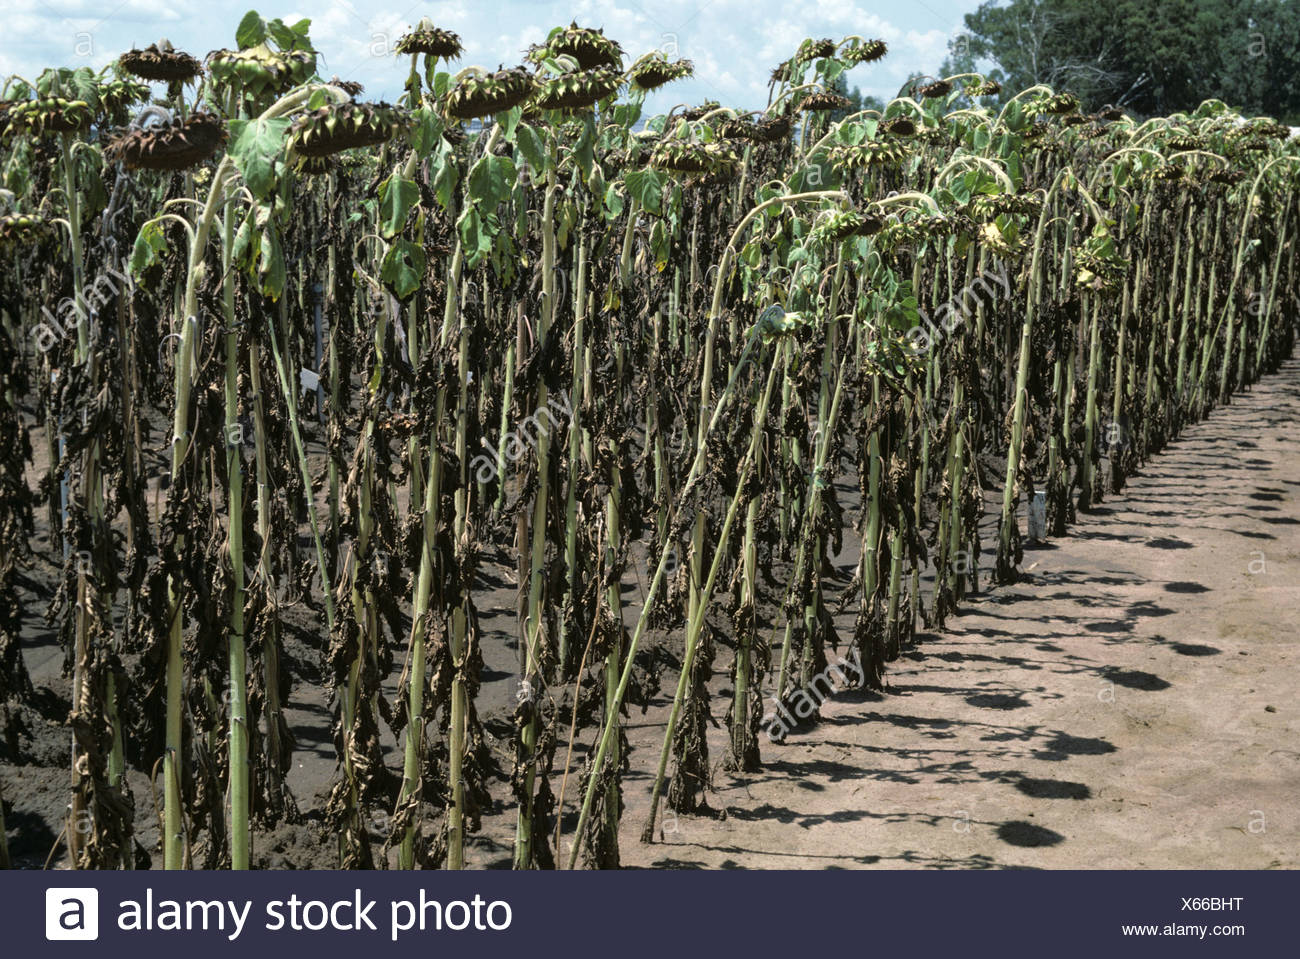 Sunflower crop defoliated and severely affected by leaf spot (Alternaria spp.), South Africa - Stock Image